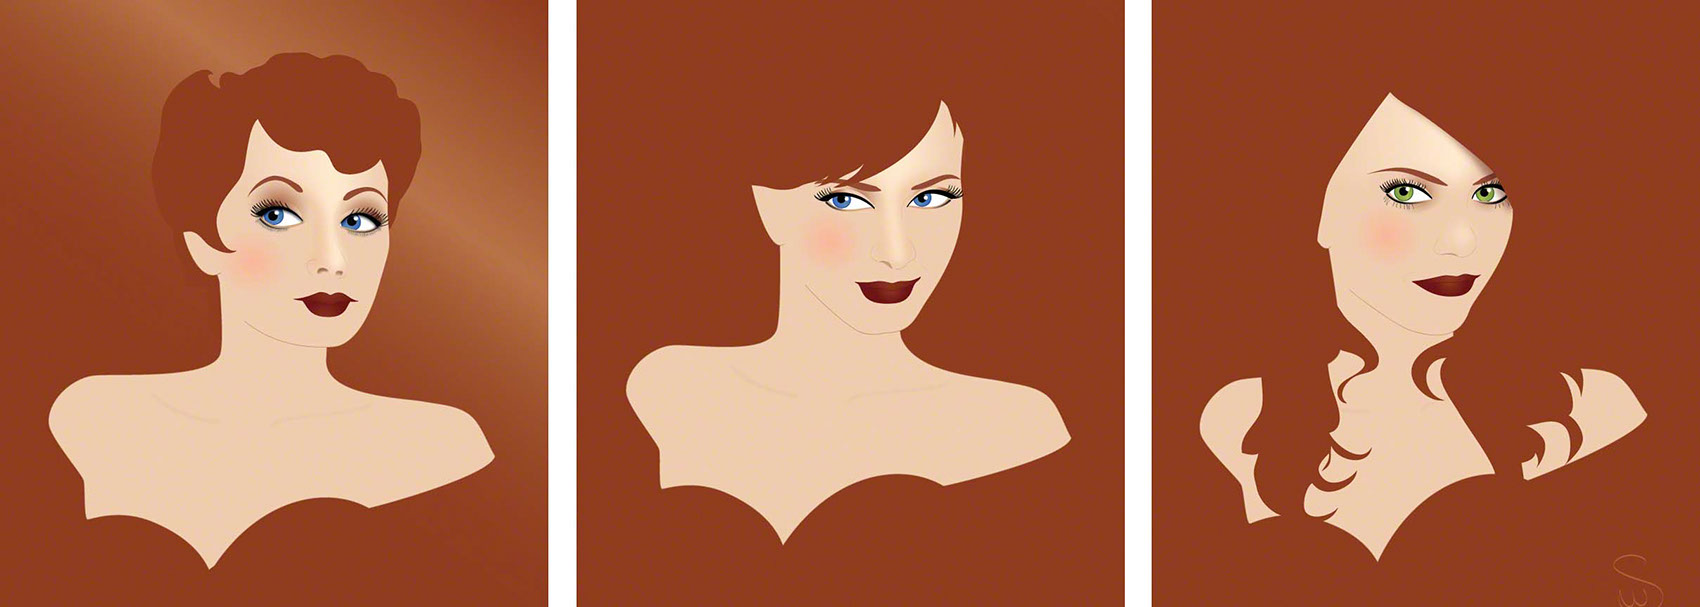 illustration-_Lucille Ball, Hendricks, Lohan